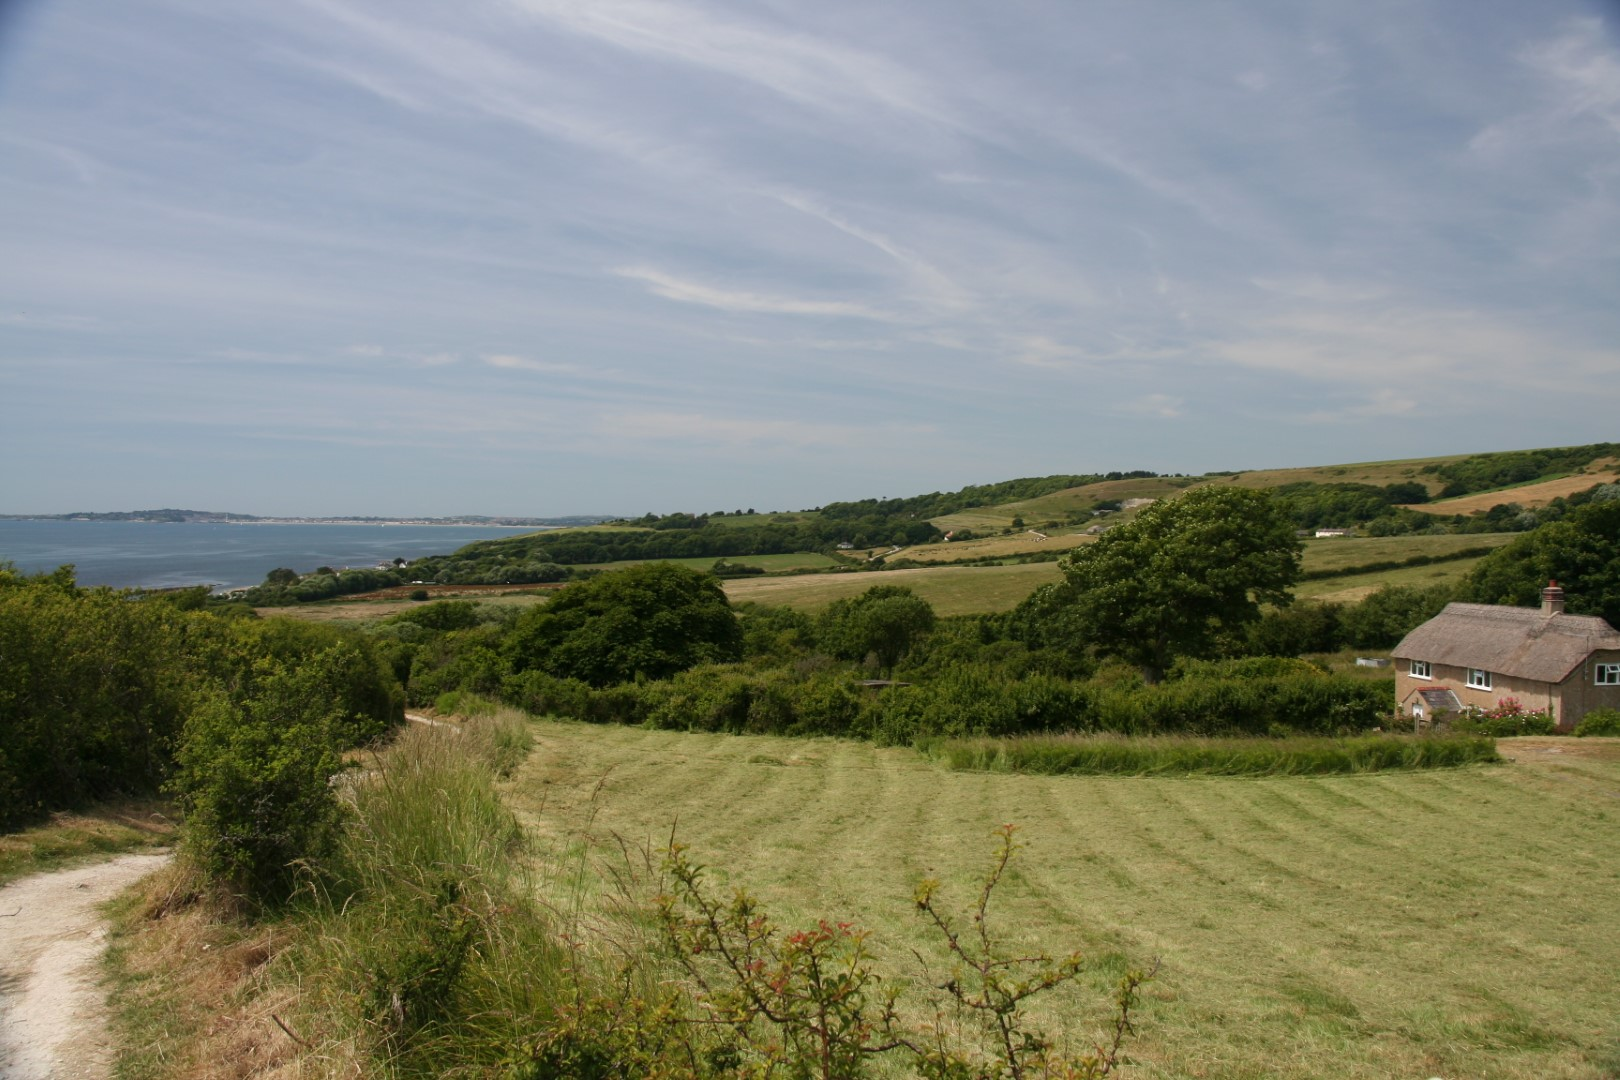 Slow descent towards Ringstead.